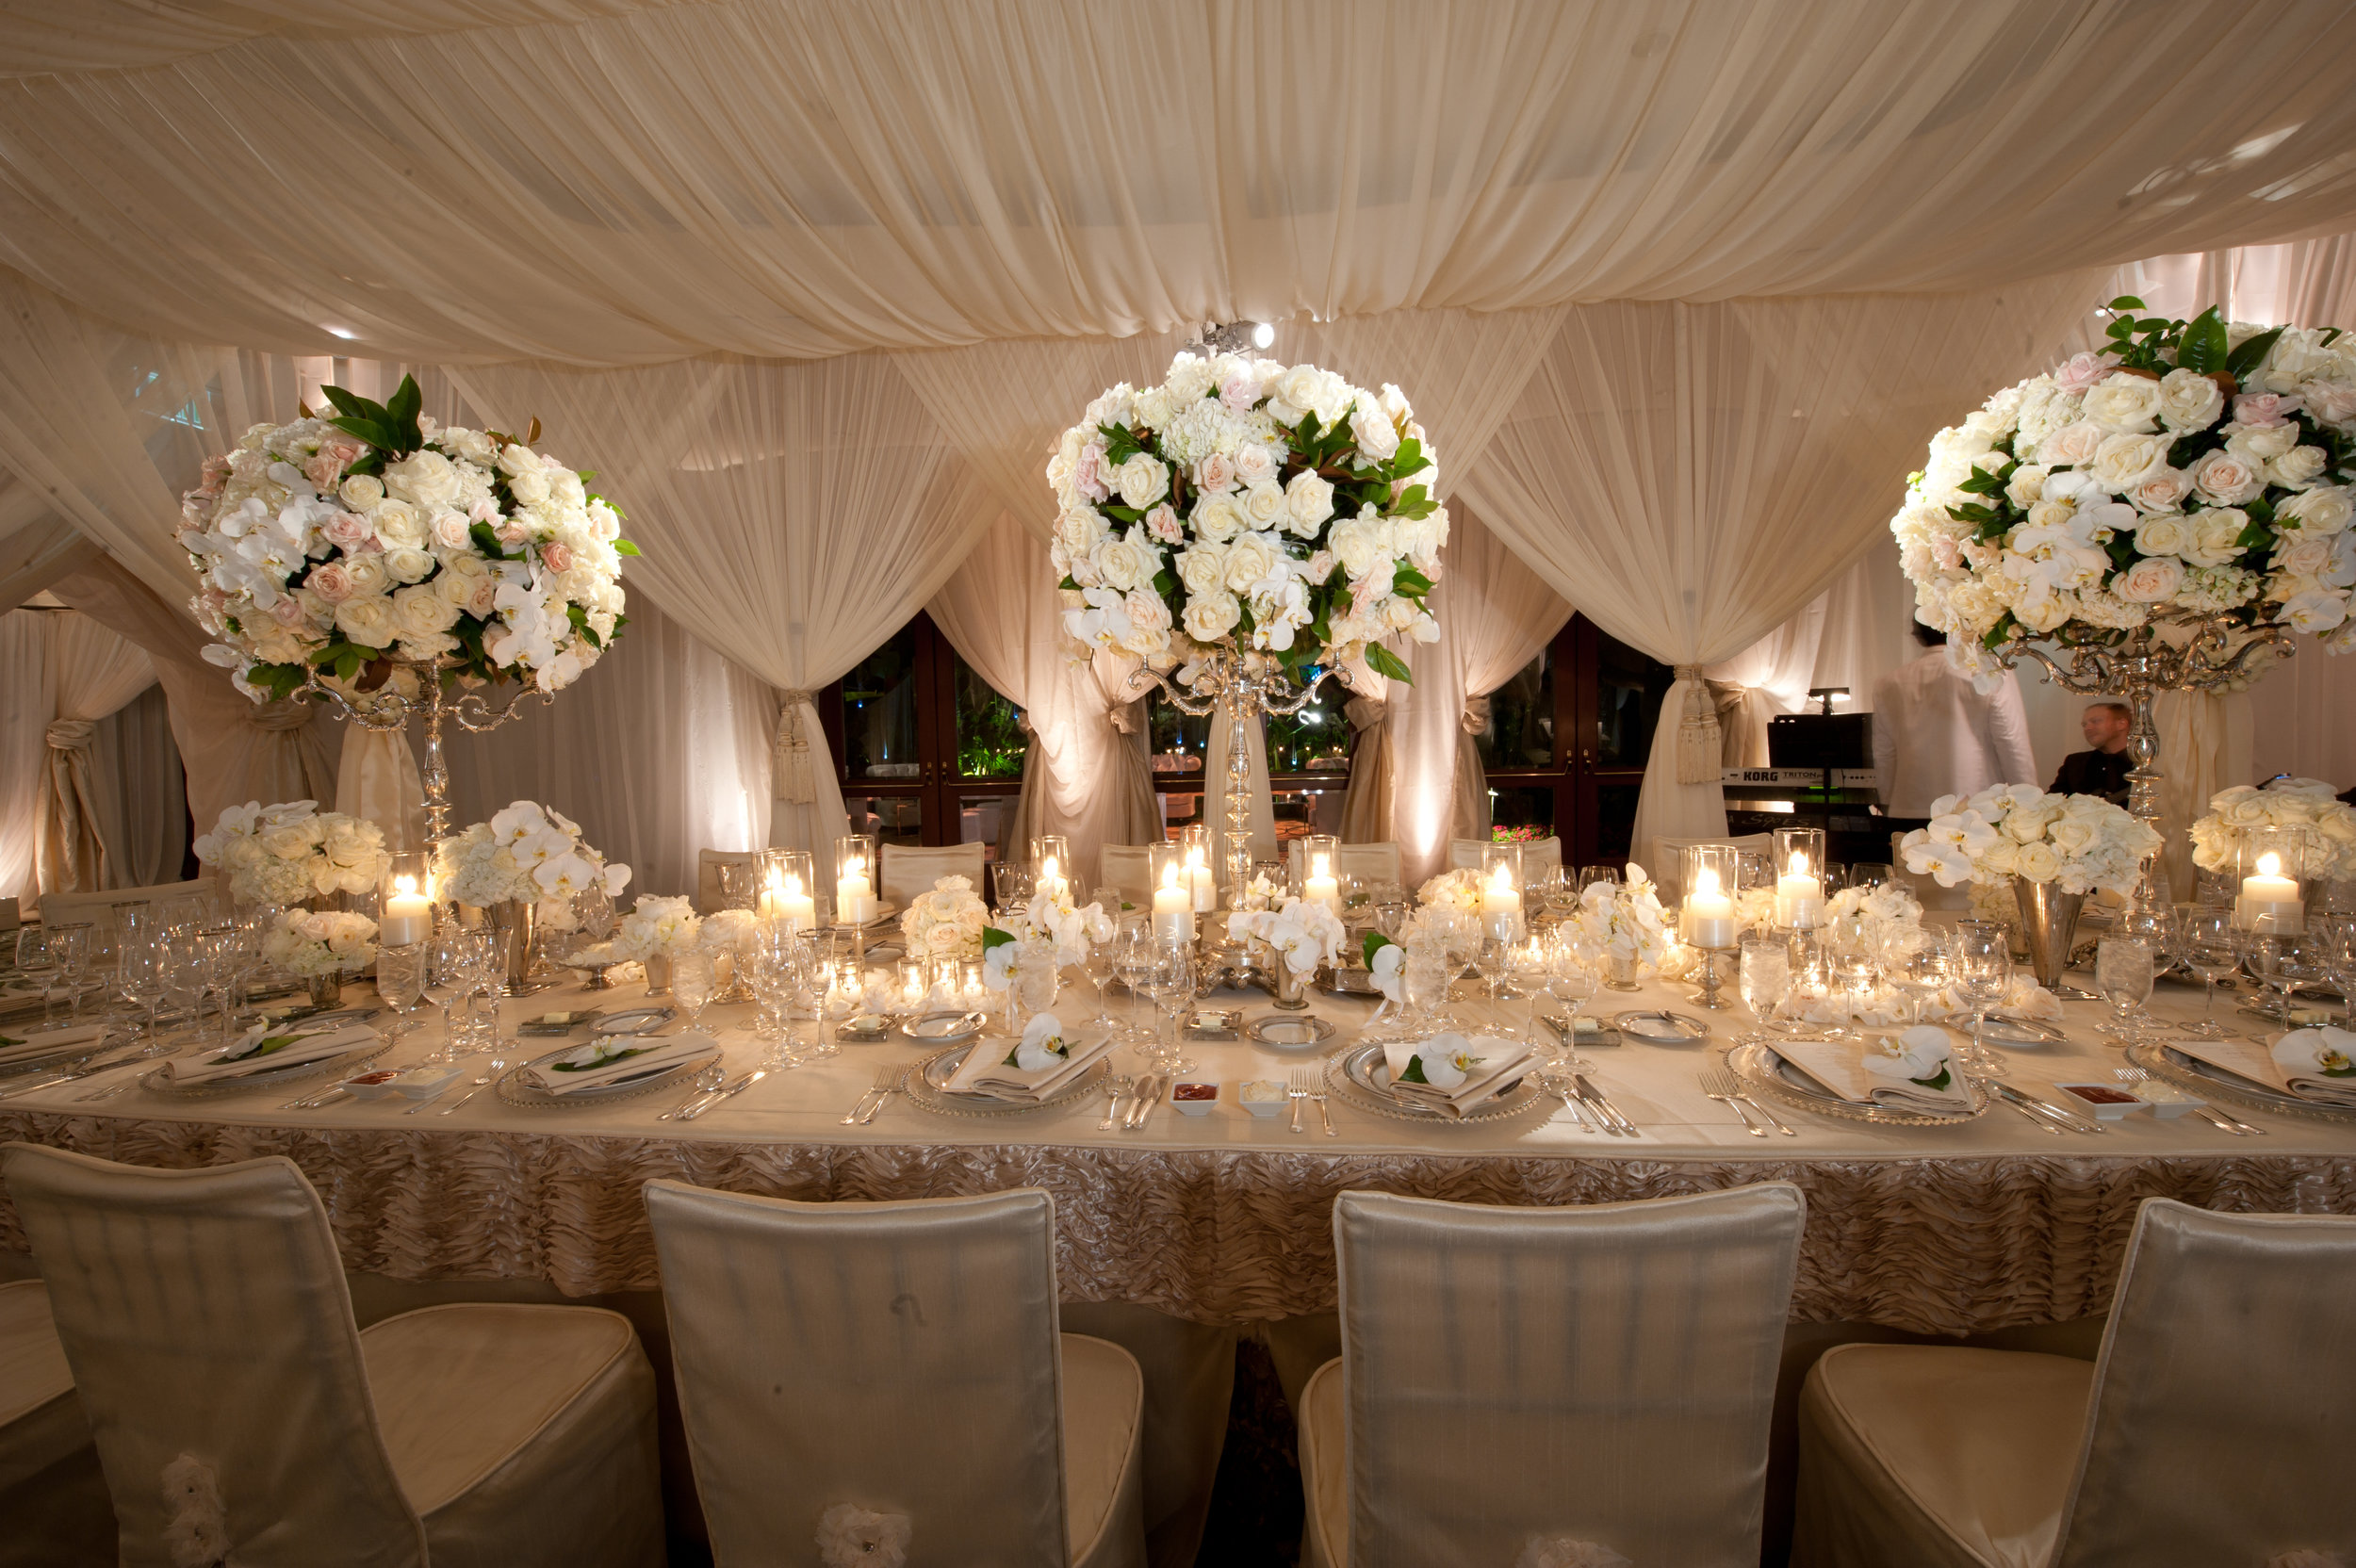 Linen Rentals & Chair Covers - Madison Florist has been providing reception hosts with wide variety of elegant linens in a wide selection of patterns and fabrics including; Table cloths, Overlays, Runners, Chair Covers and Ties.